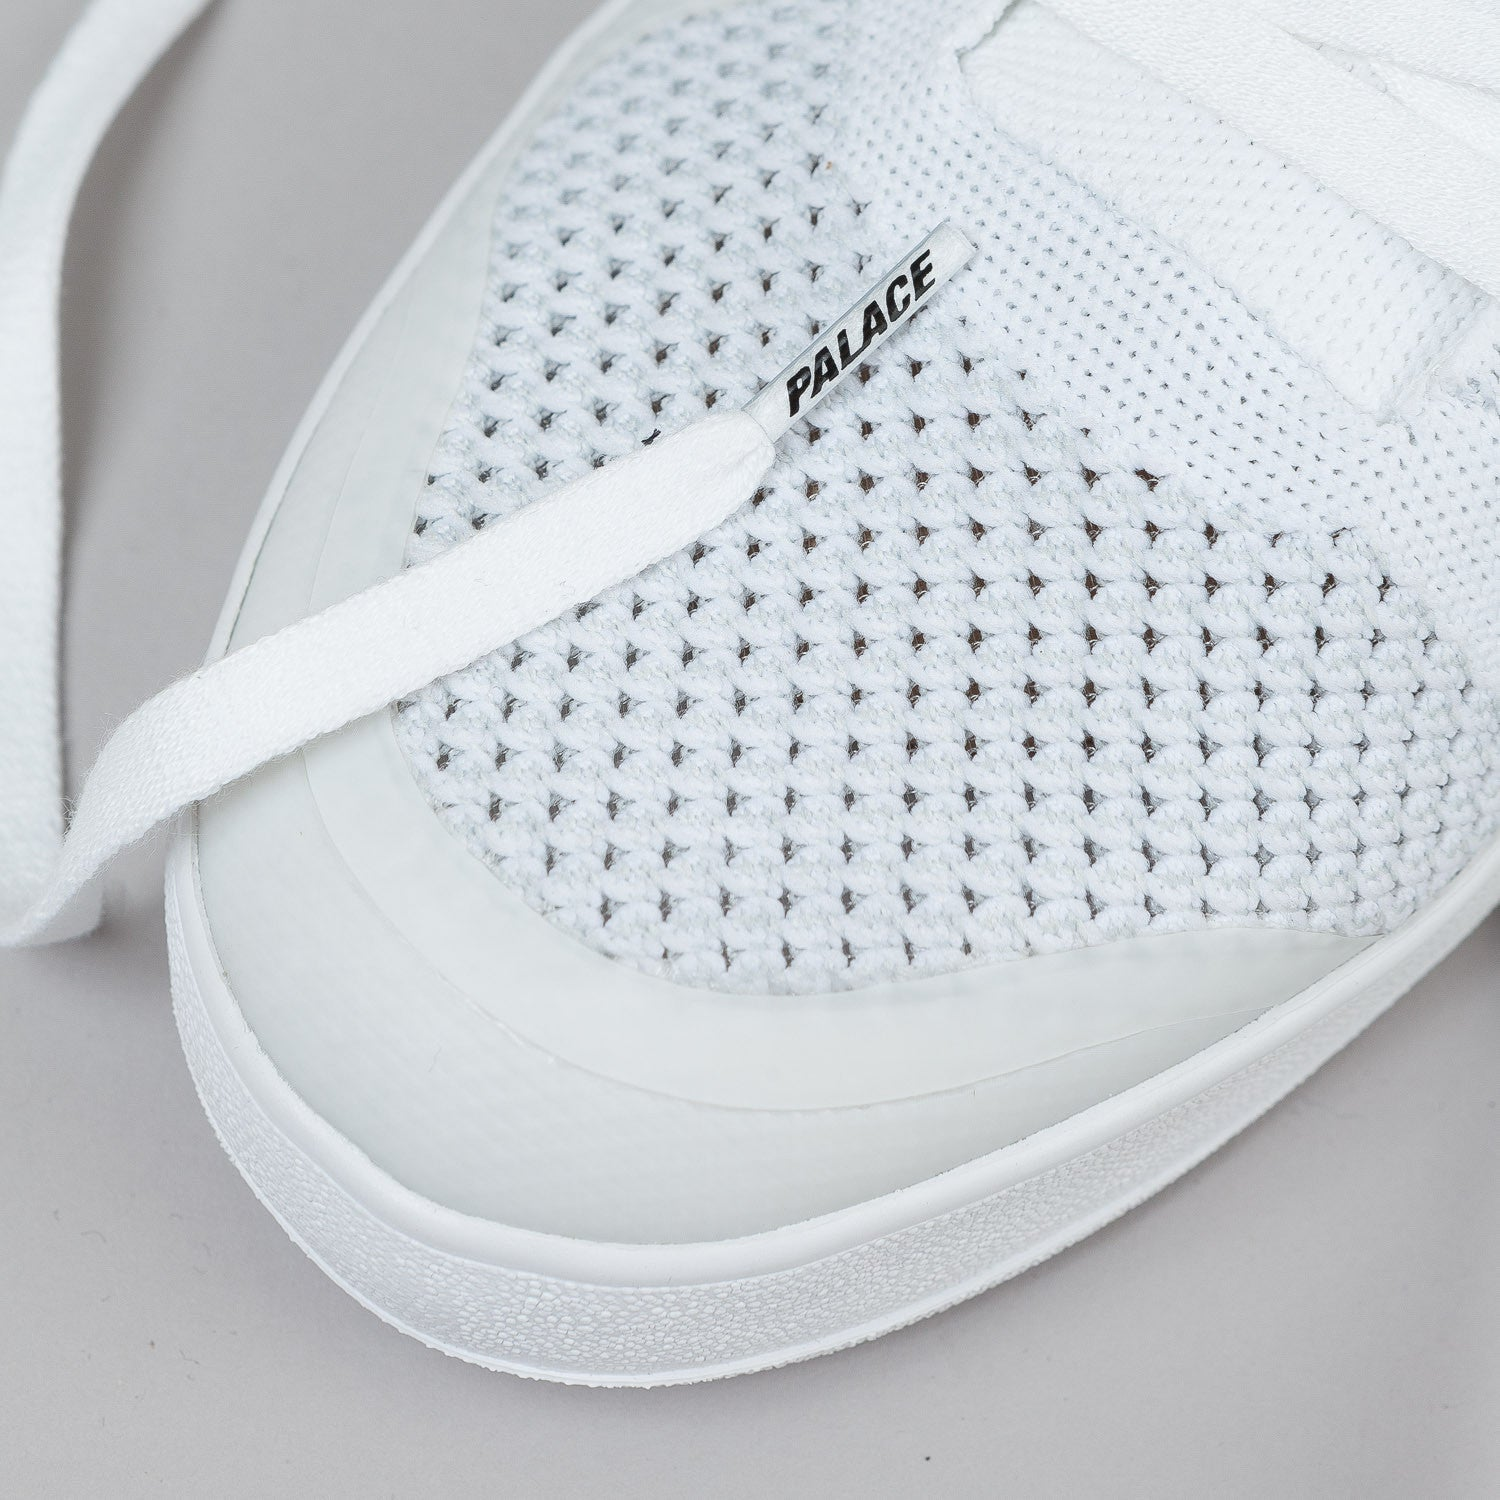 Adidas X Palace Pro Primeknit Shoes - White / Black / White